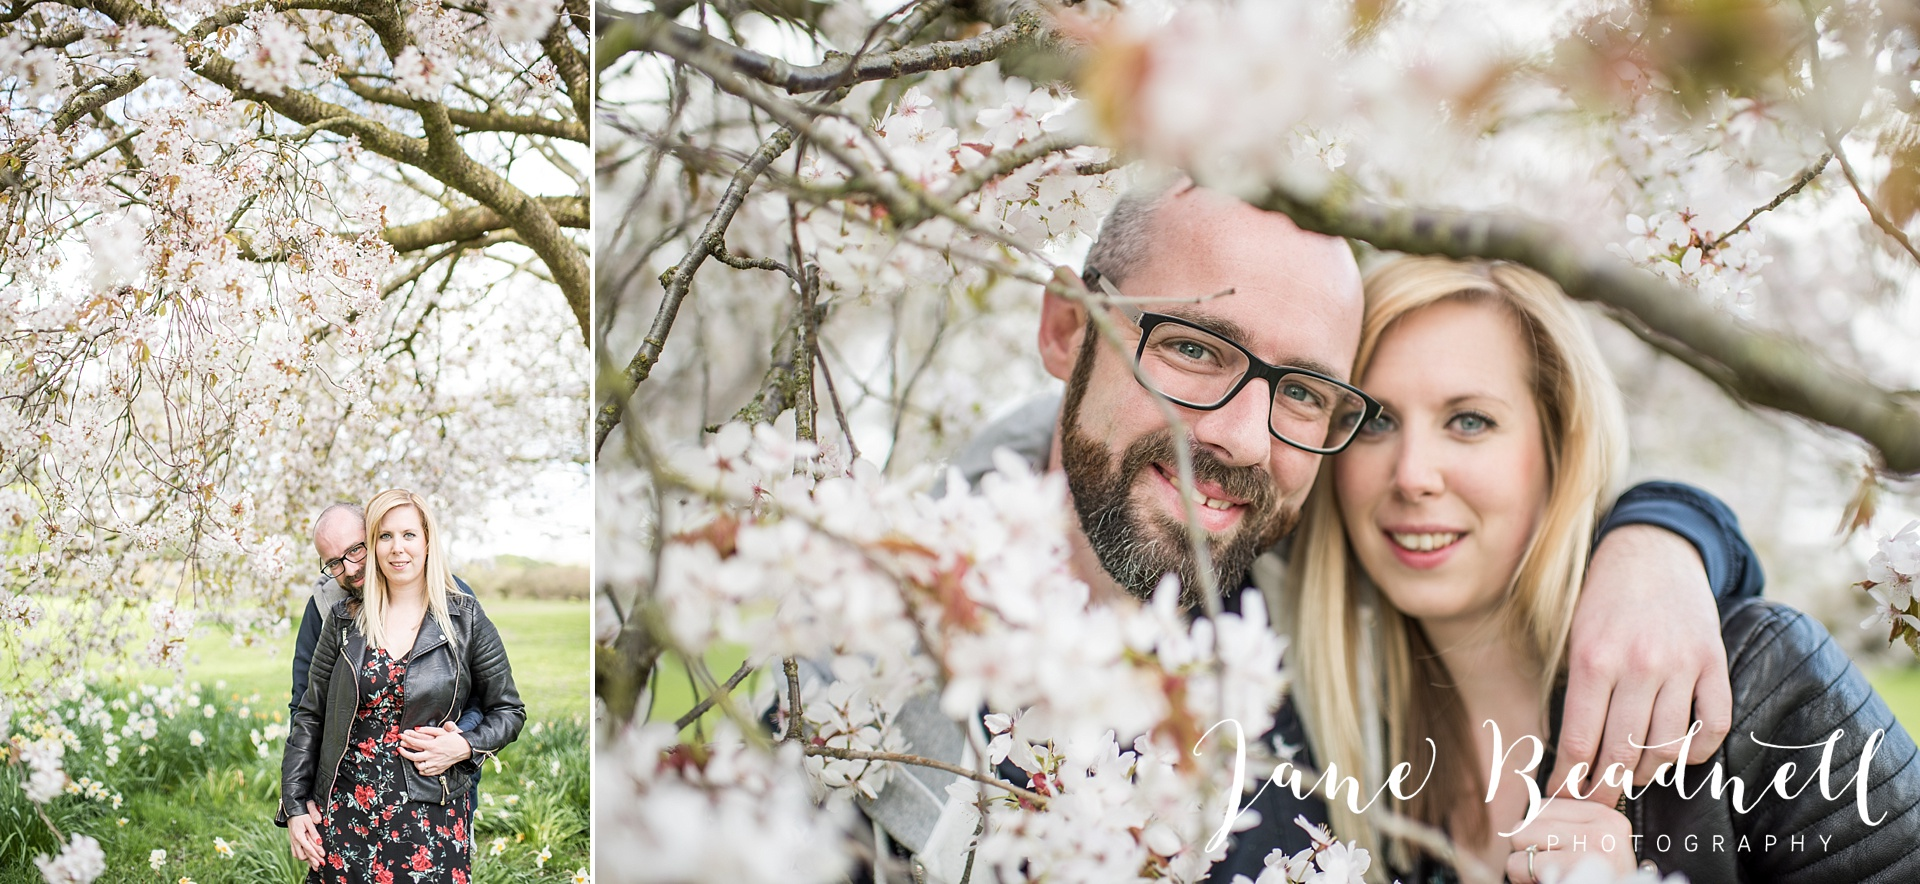 Temple Newsam engagement photography by Jane Beadnell Wedding Photography_0007